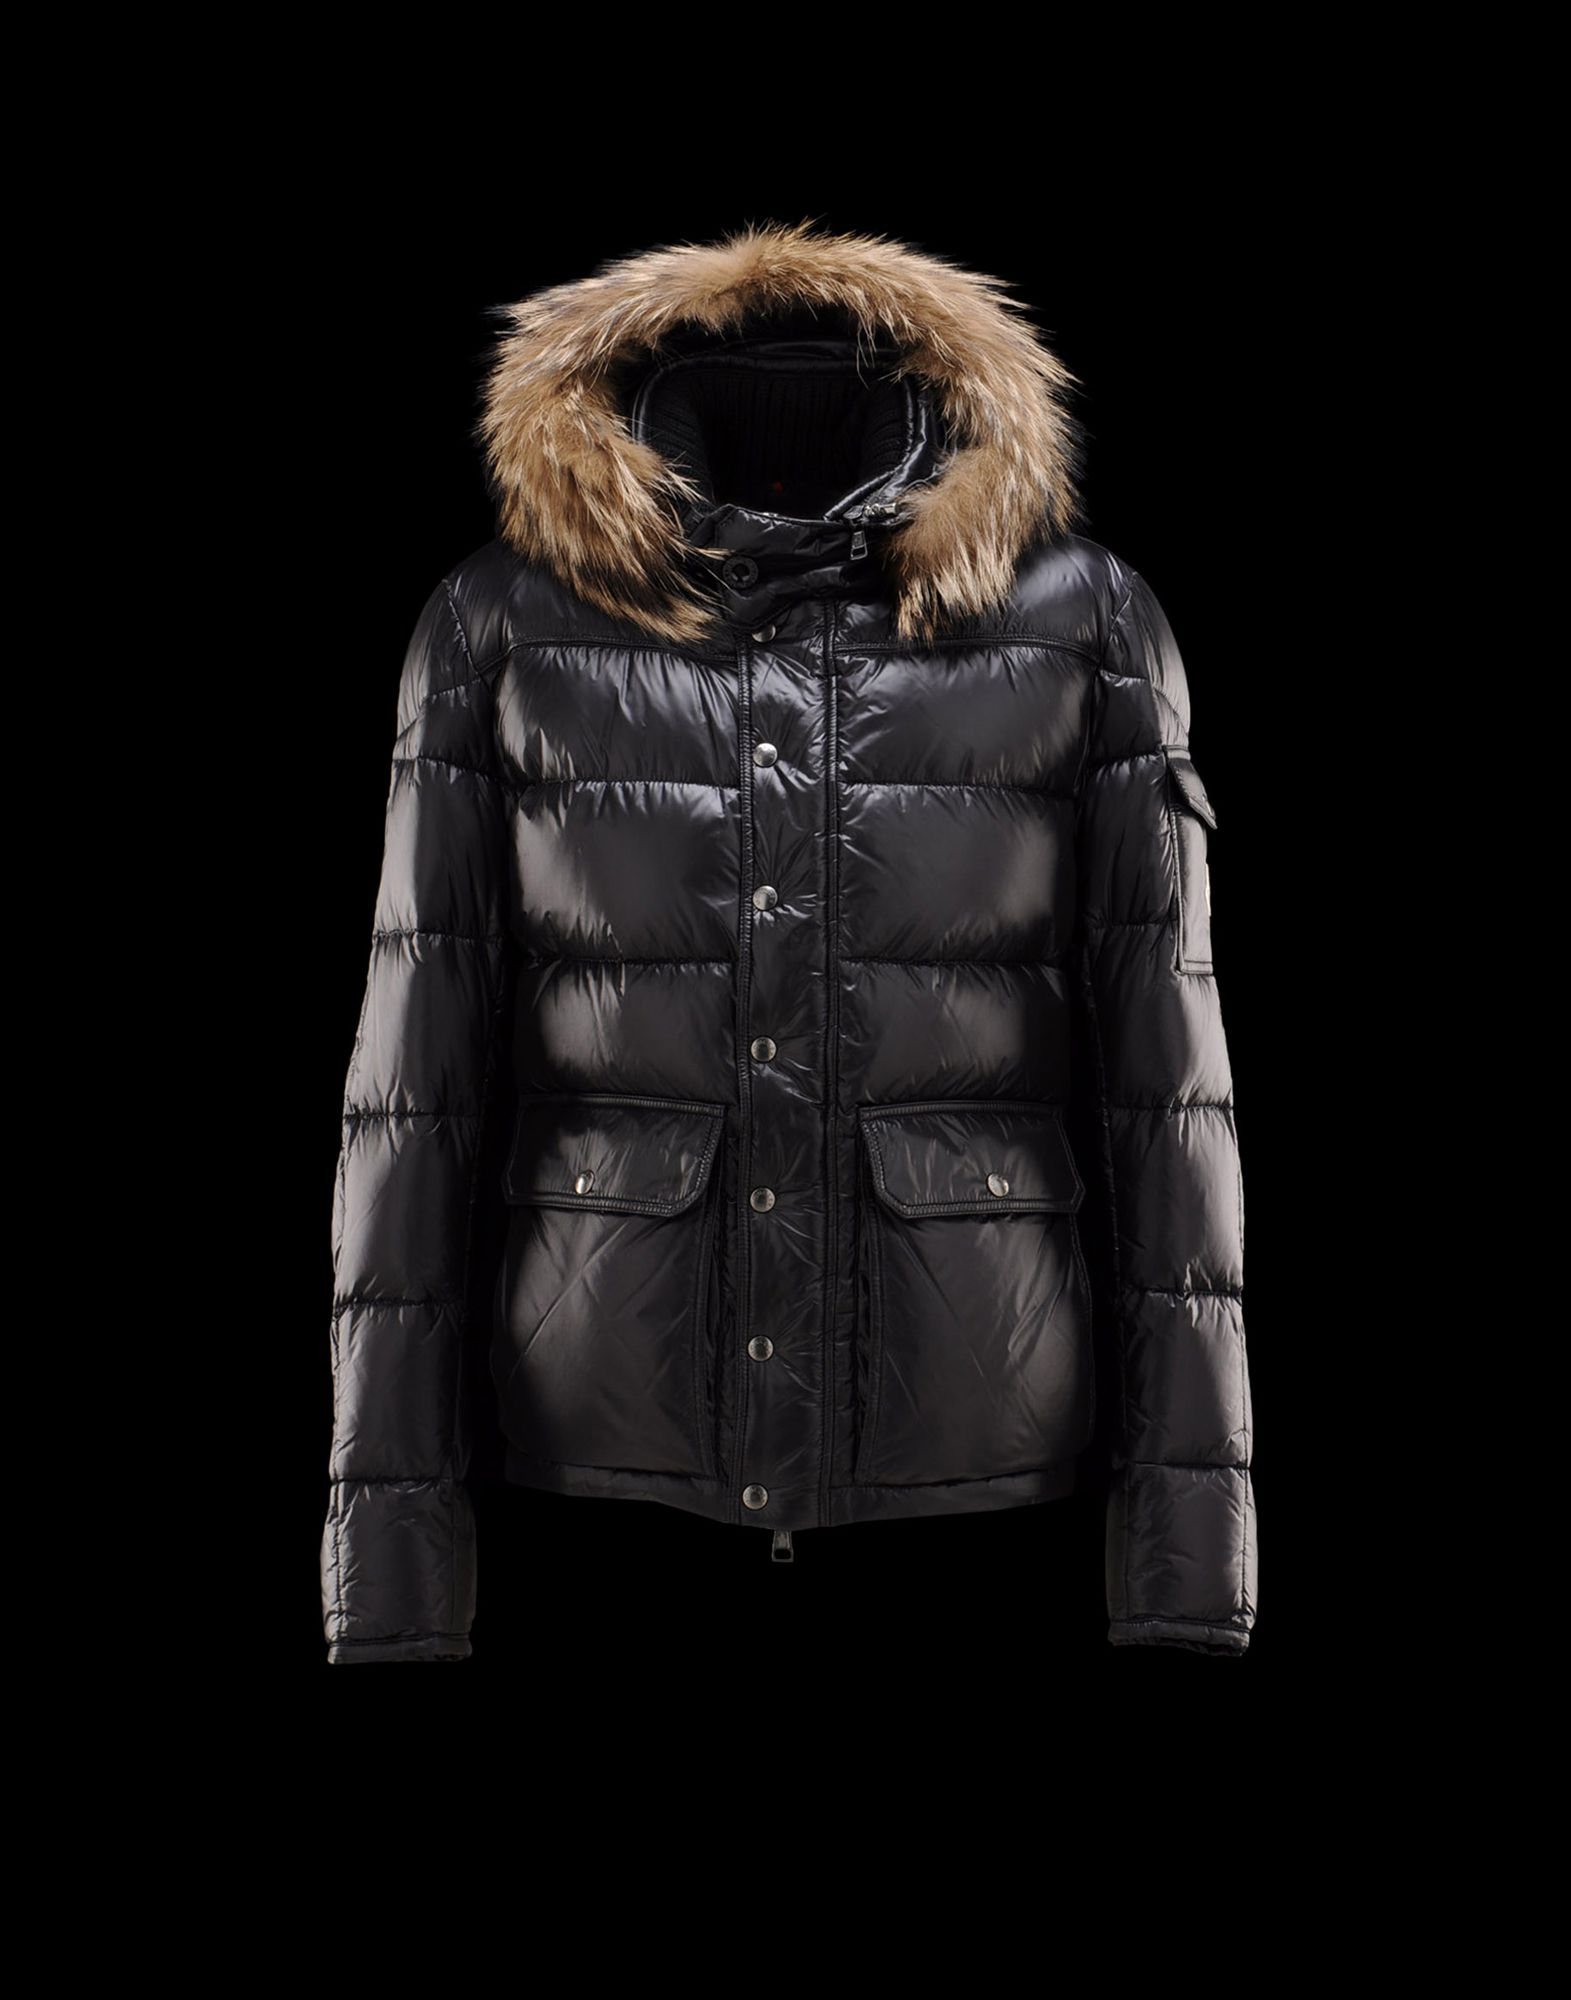 Cheap Moncler Hubert Men Coats Black With Fur Collar Removable Cap Sale NA1124